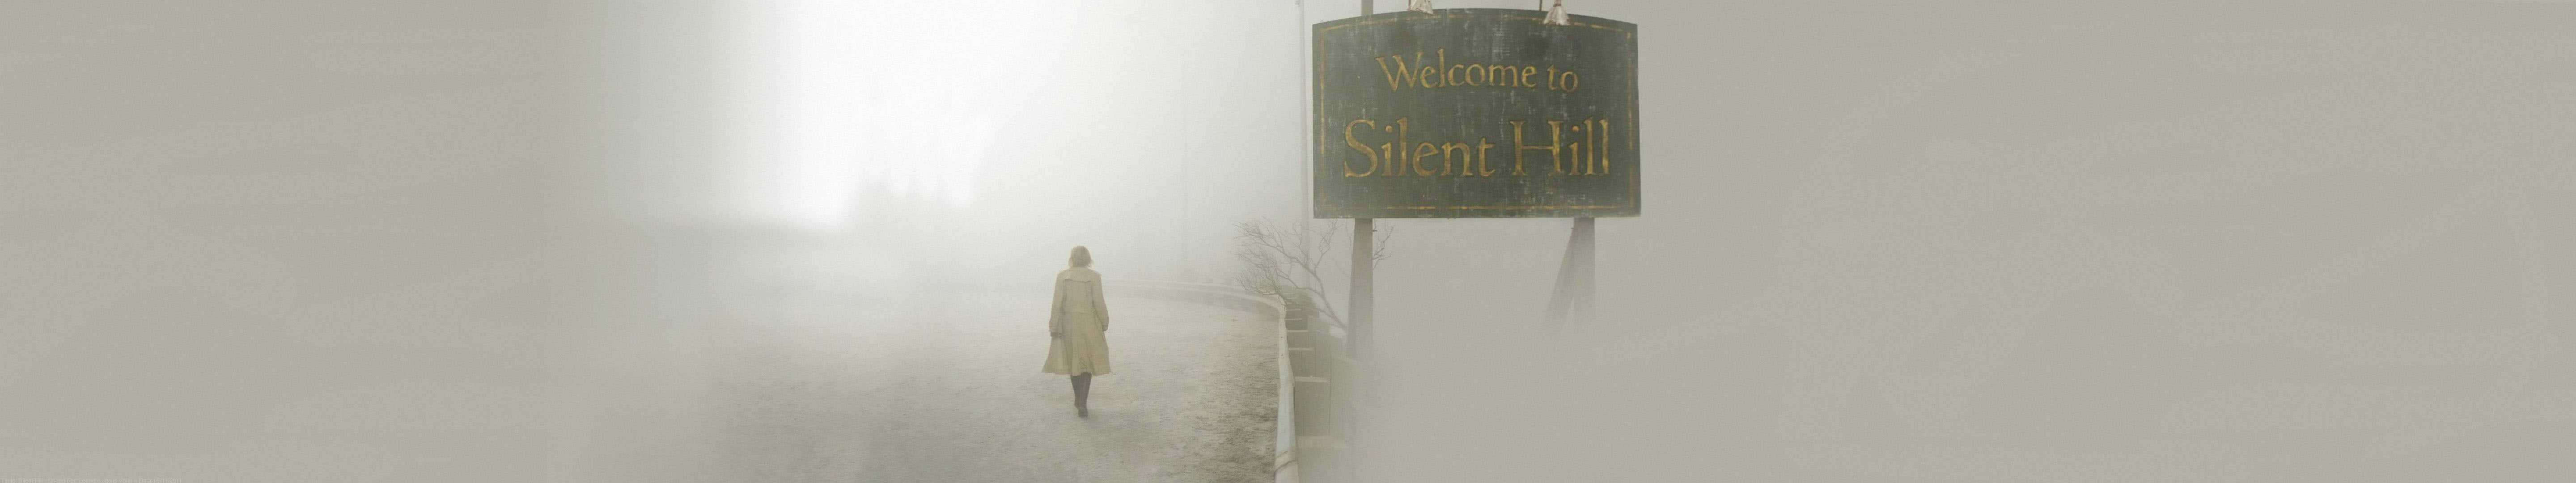 silent hill sign triple monitor wallpaper